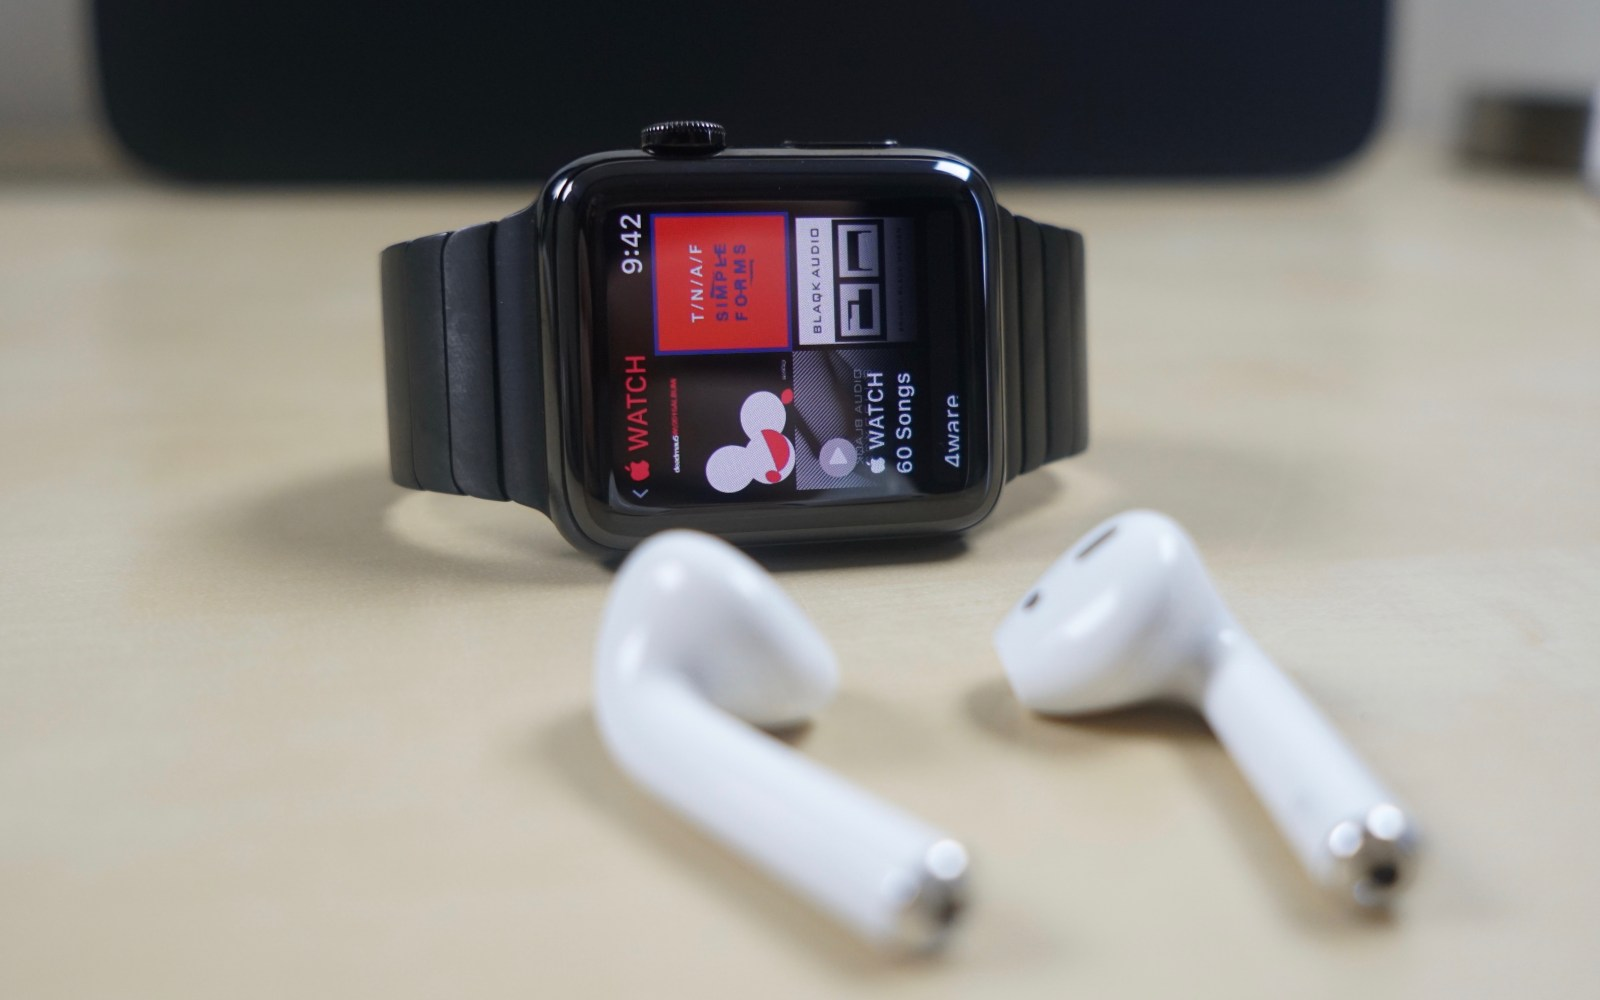 How to sync and play music from Apple Watch without iPhone